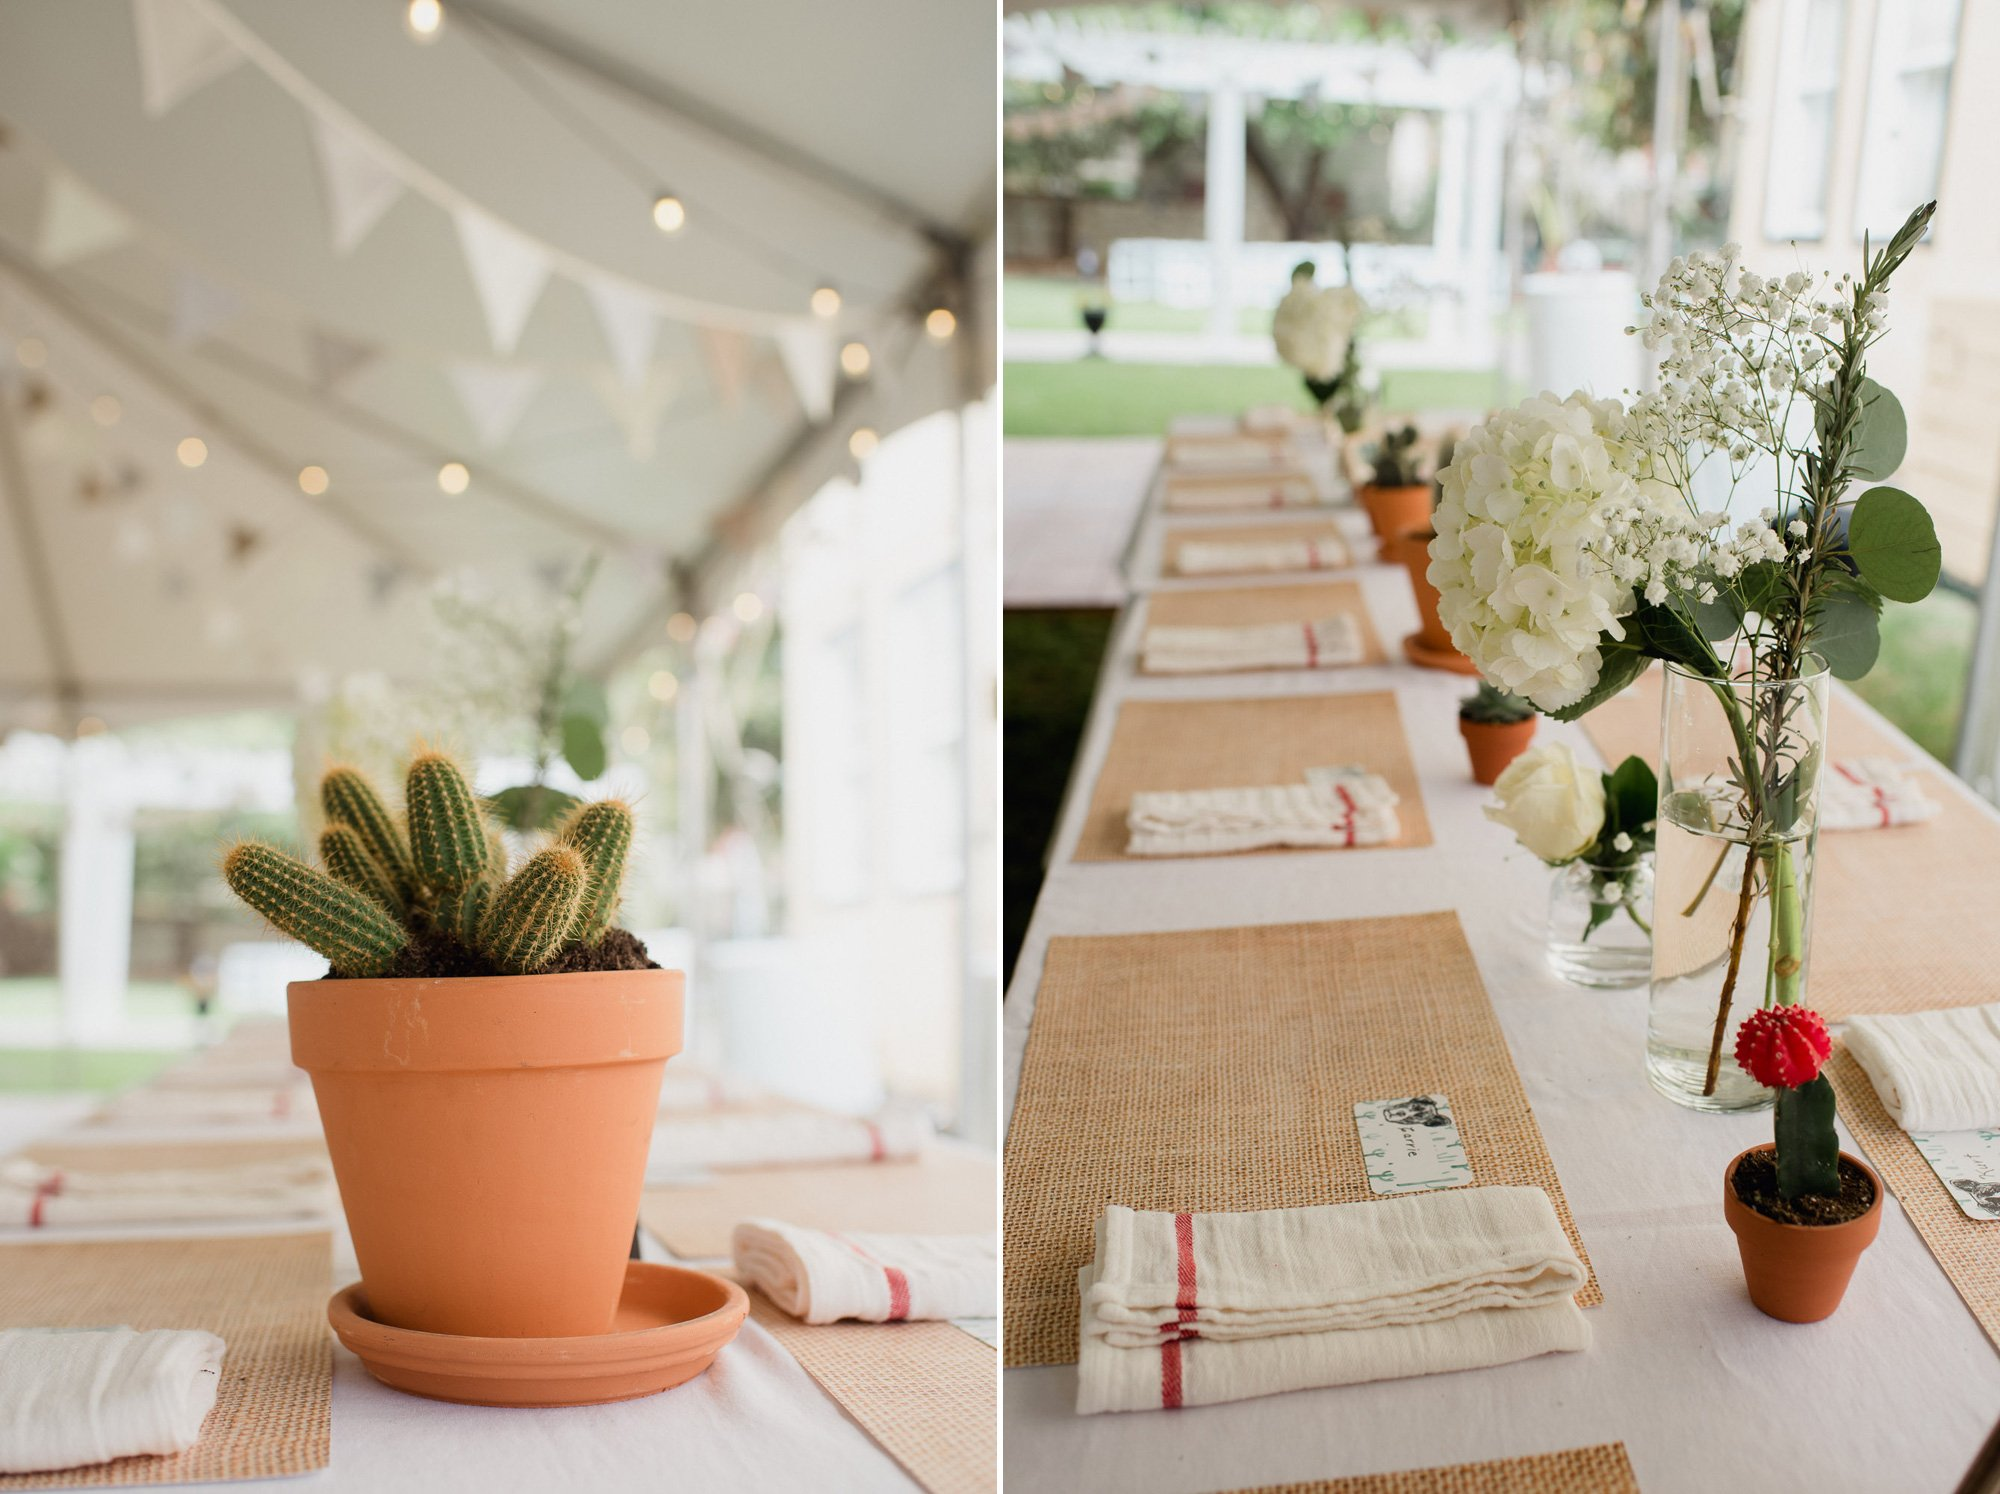 organic, cactus san antonio backyard wedding details, DIY wedding in texas